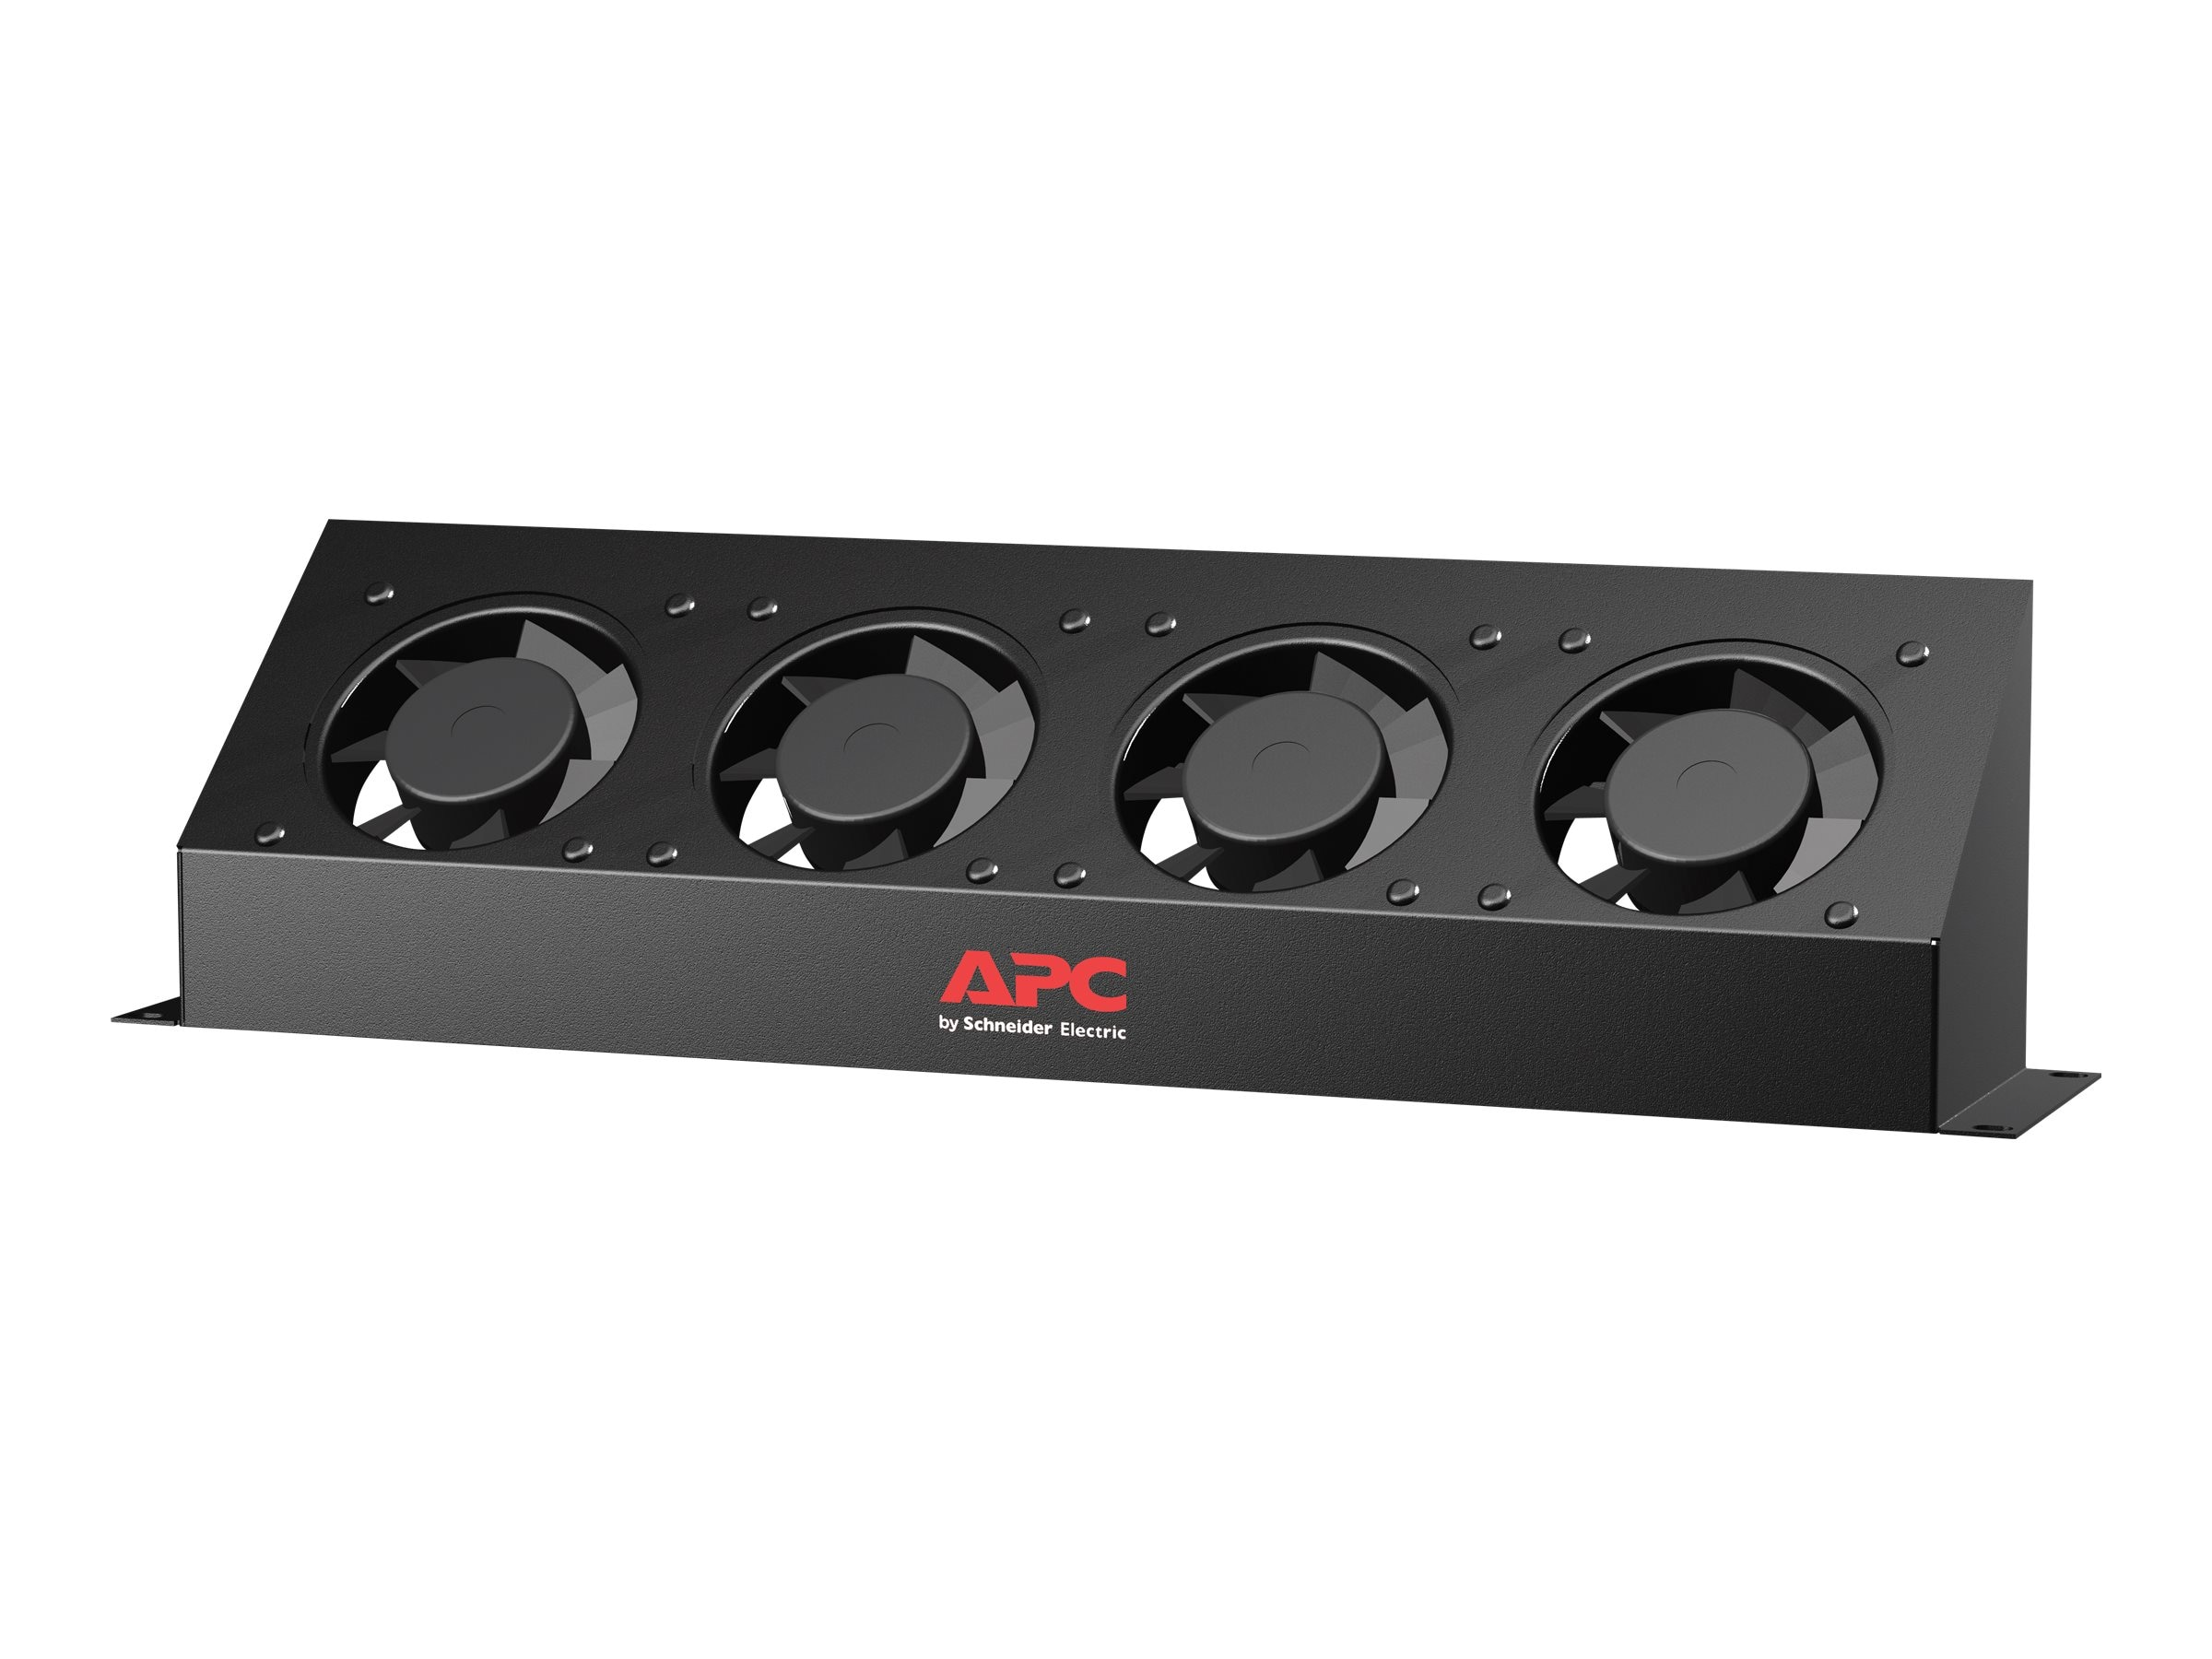 APC NetShelter AV 2U Rack Fan Panel, ACF600